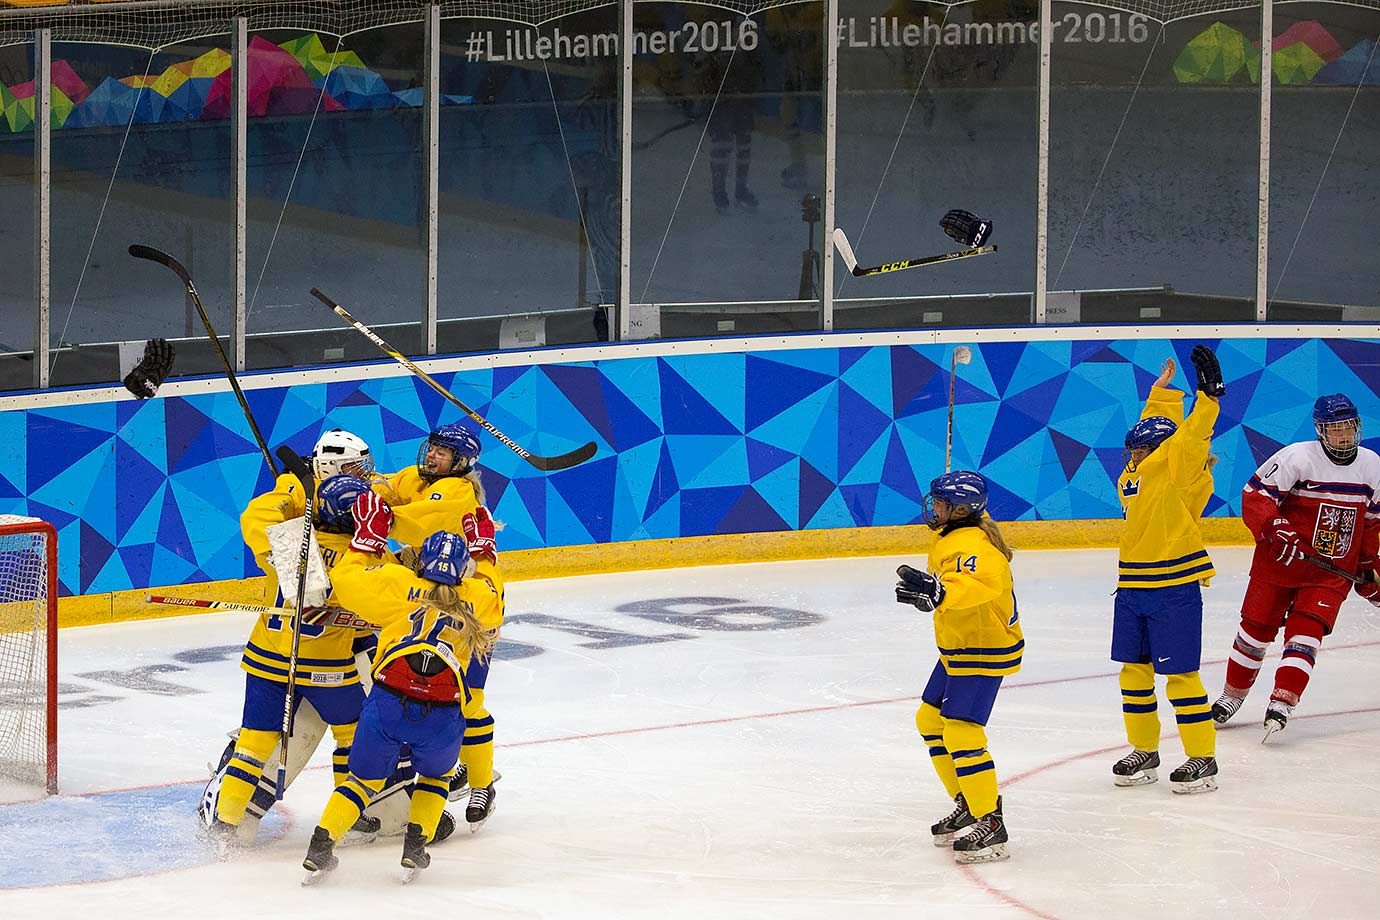 Team Sweden celebrates their victory 3-1 over the Czech Republic in the Ice Hockey Ladies' final at the Kristins Hall on Feb. 21, 2016 during the Winter Youth Olympic Games in Lillehammer, Norway.